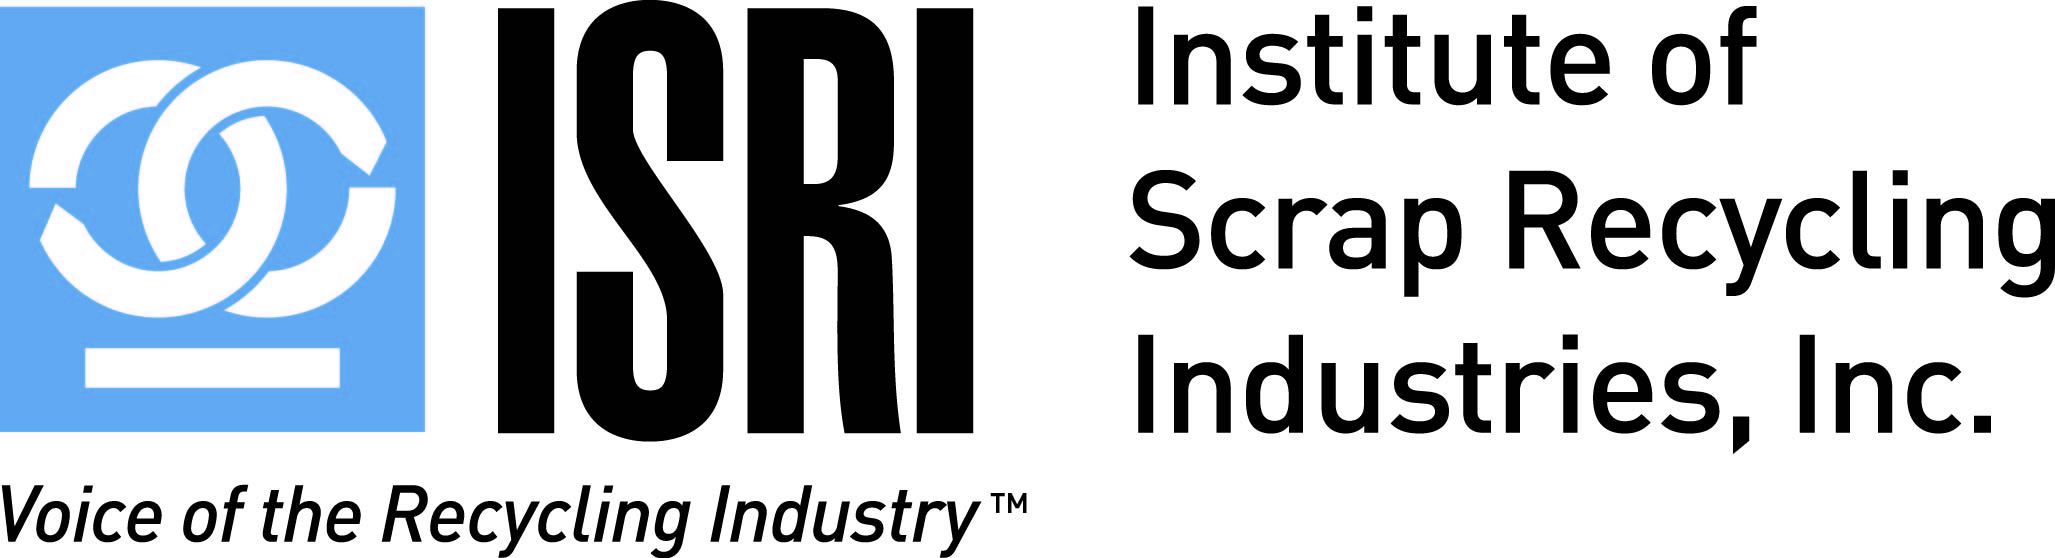 ISRI | Institute of Scrap Recycling Industry